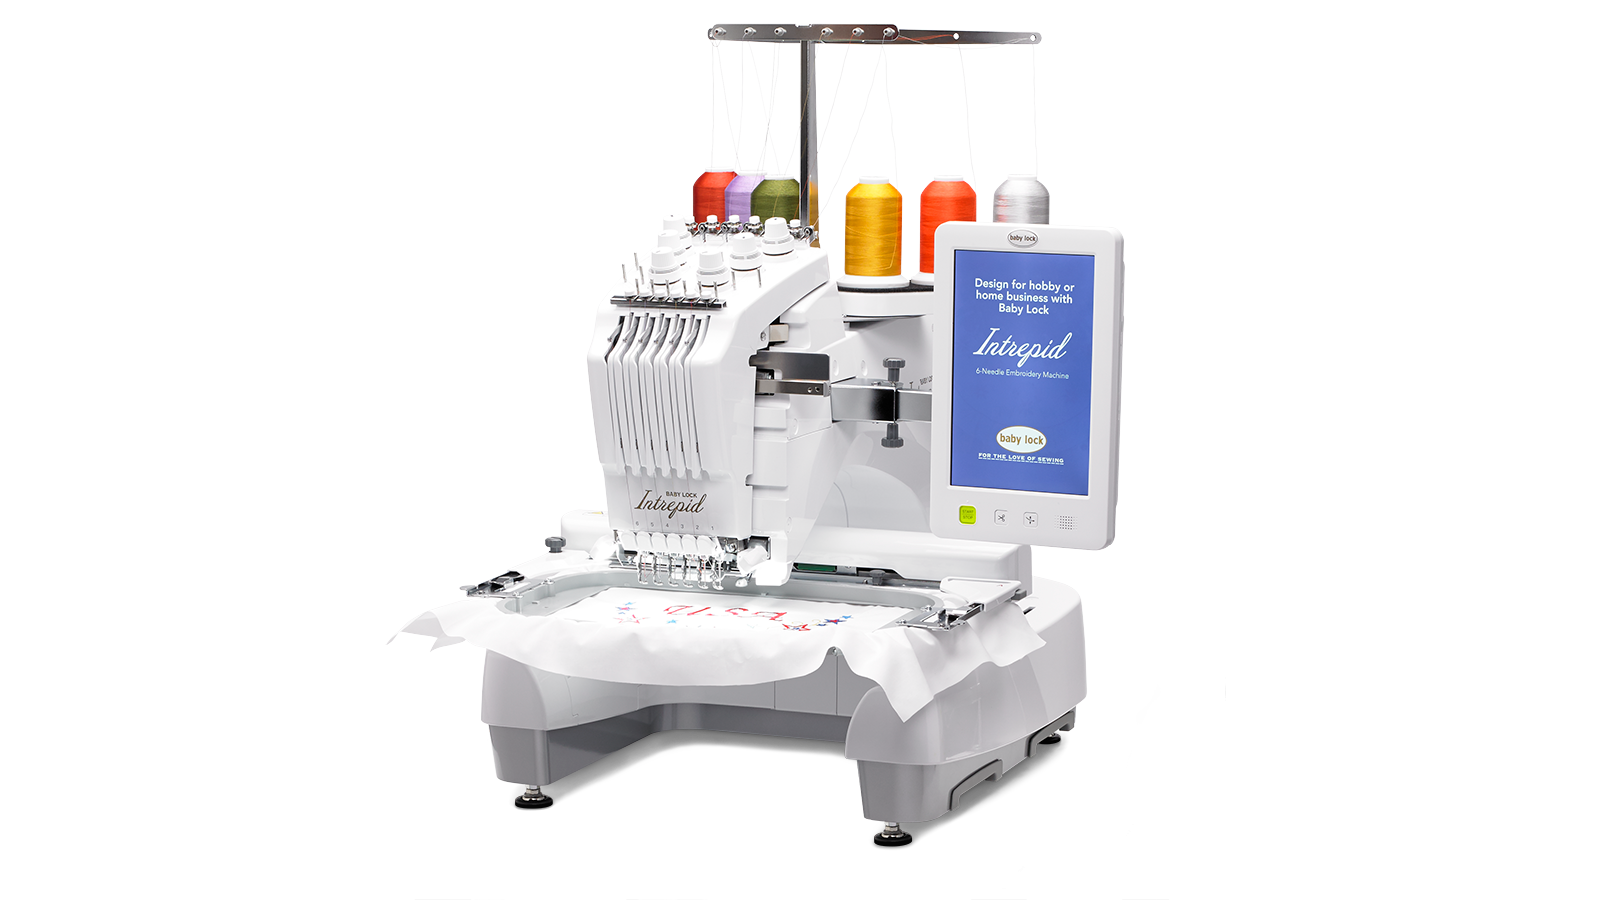 Intrepid - Multi-needle-embroidery Machine